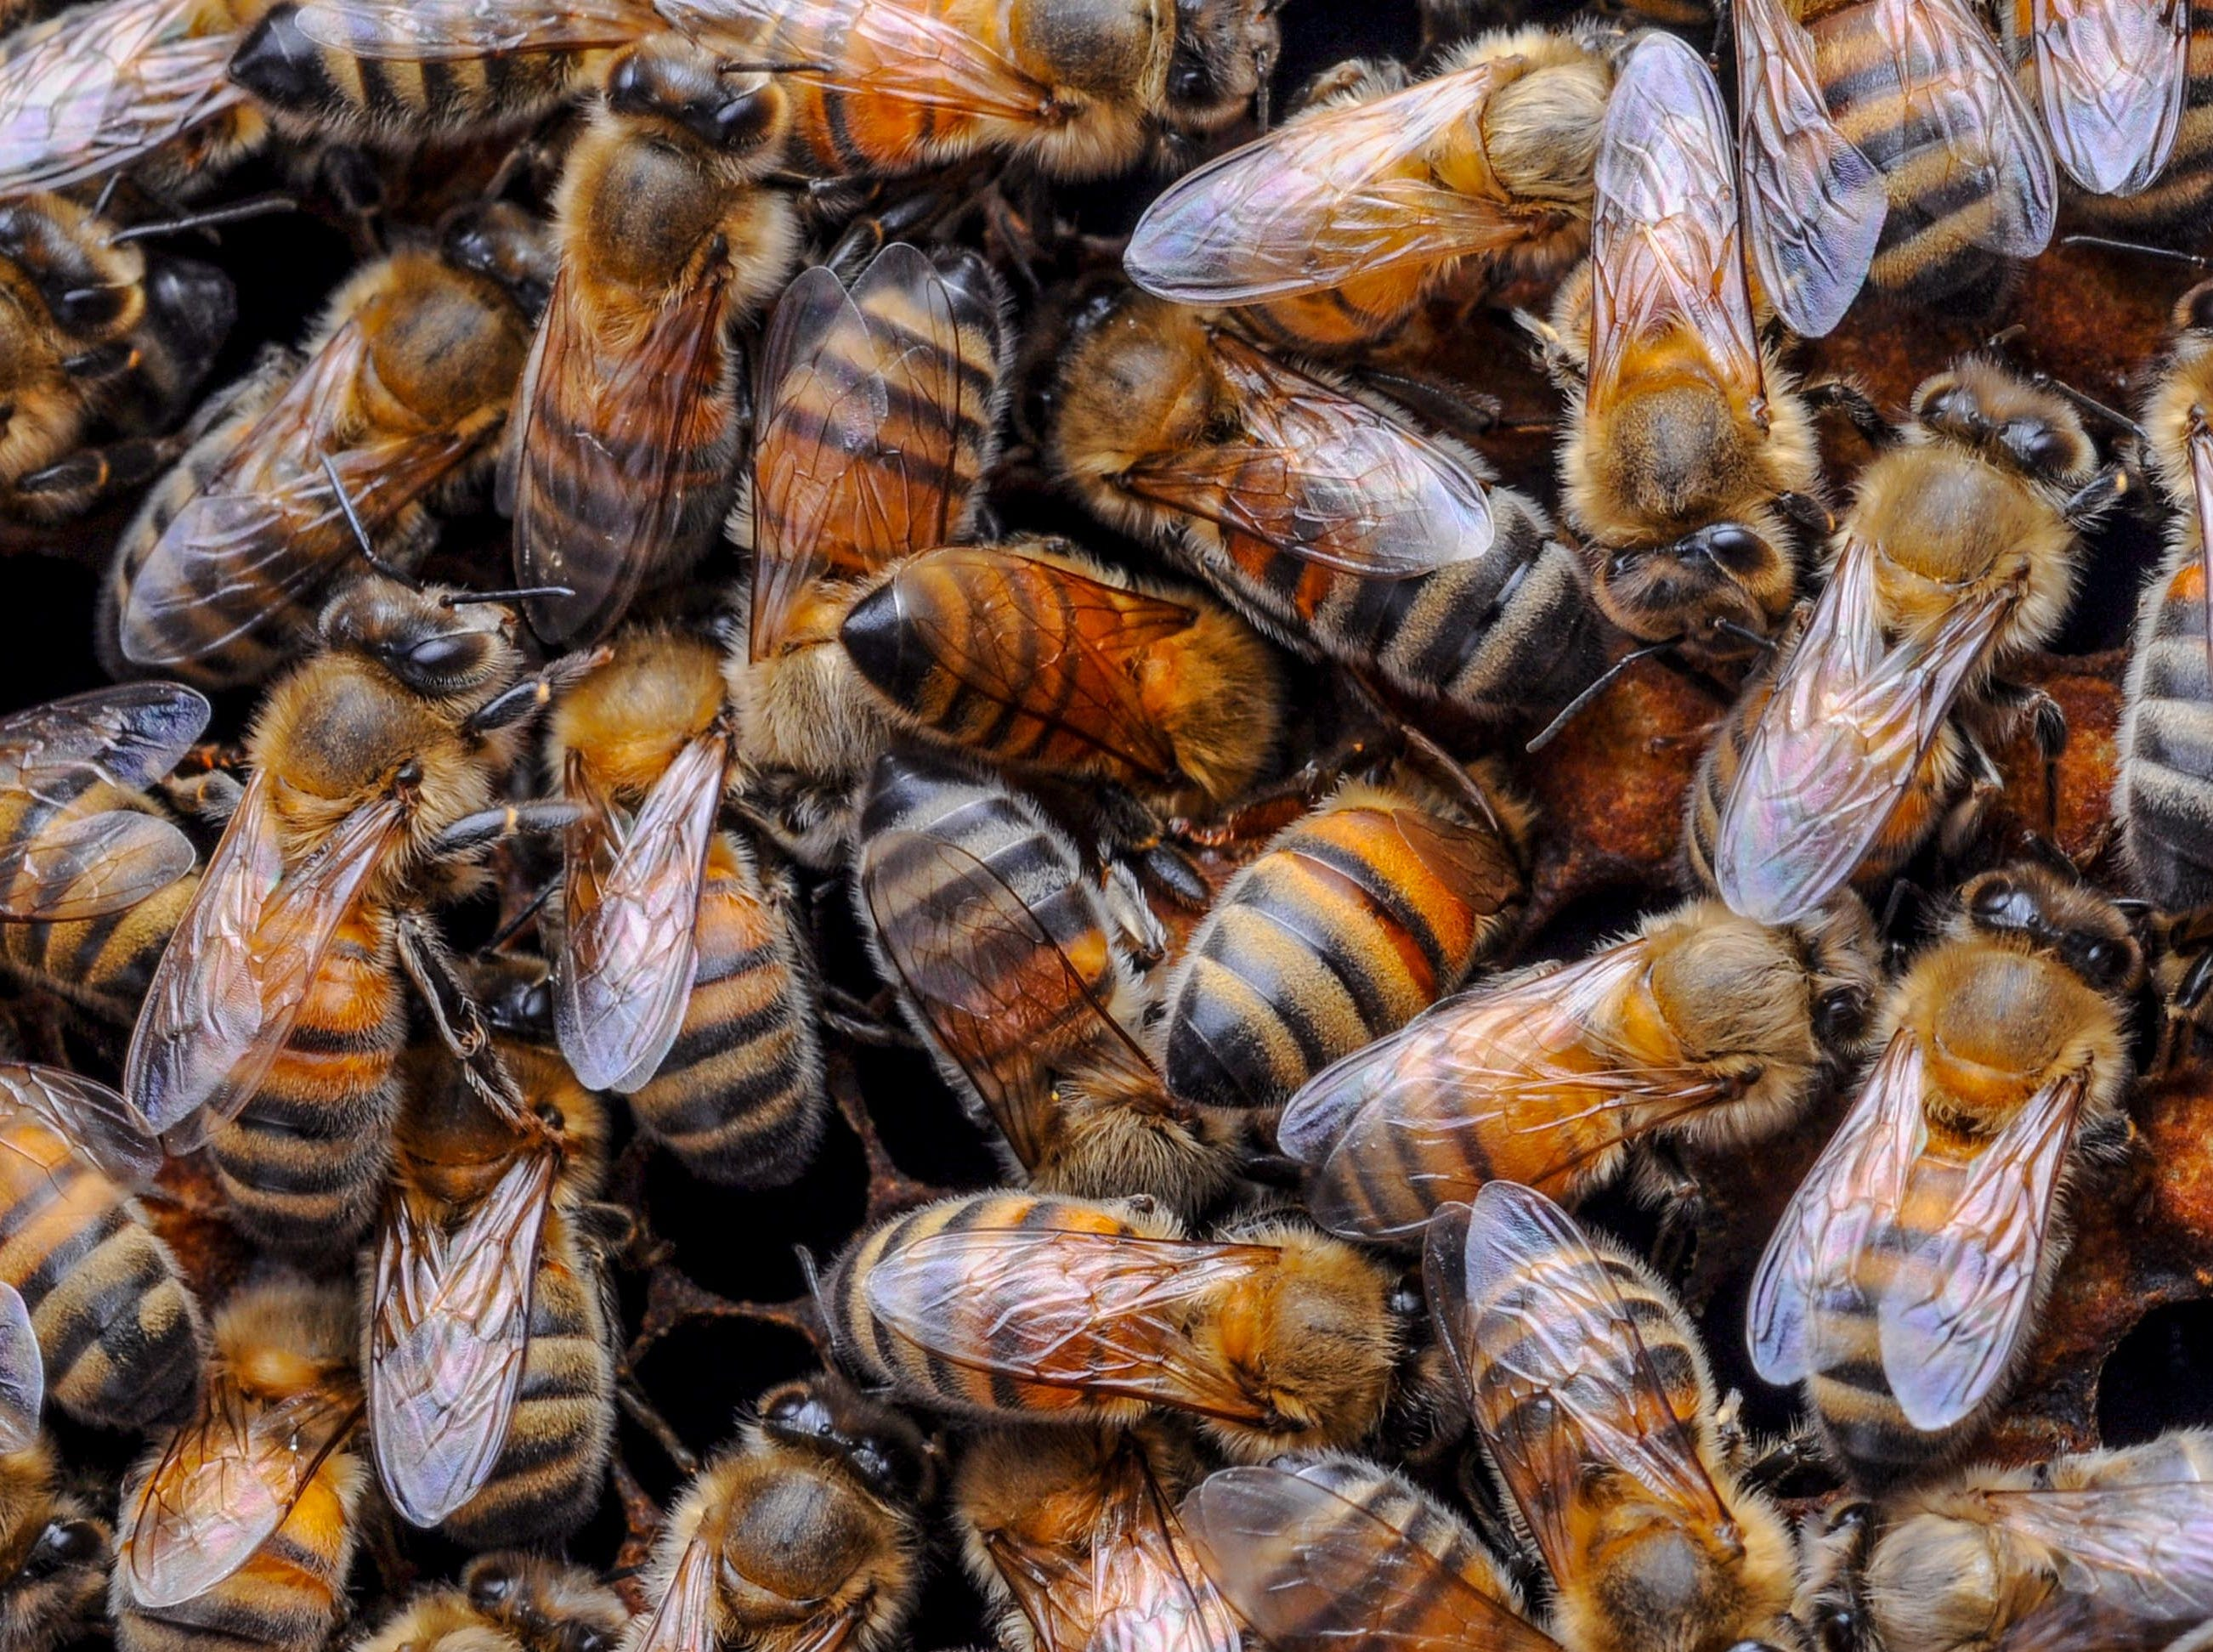 A honeycomb of bees at the Kaplan farm in Pickens Thursday.